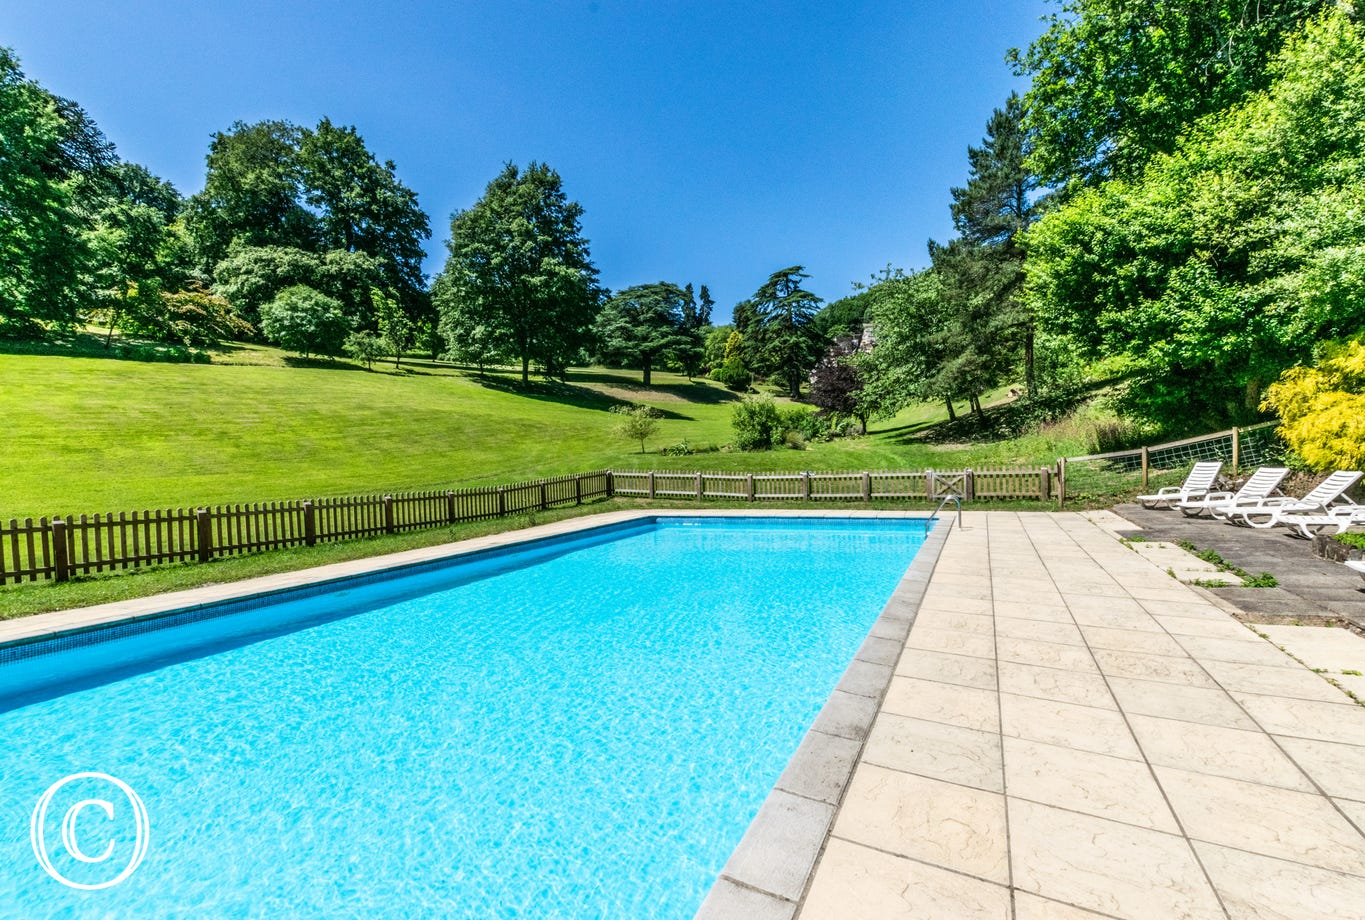 Within the grounds sits an outdoor heated swimming pool